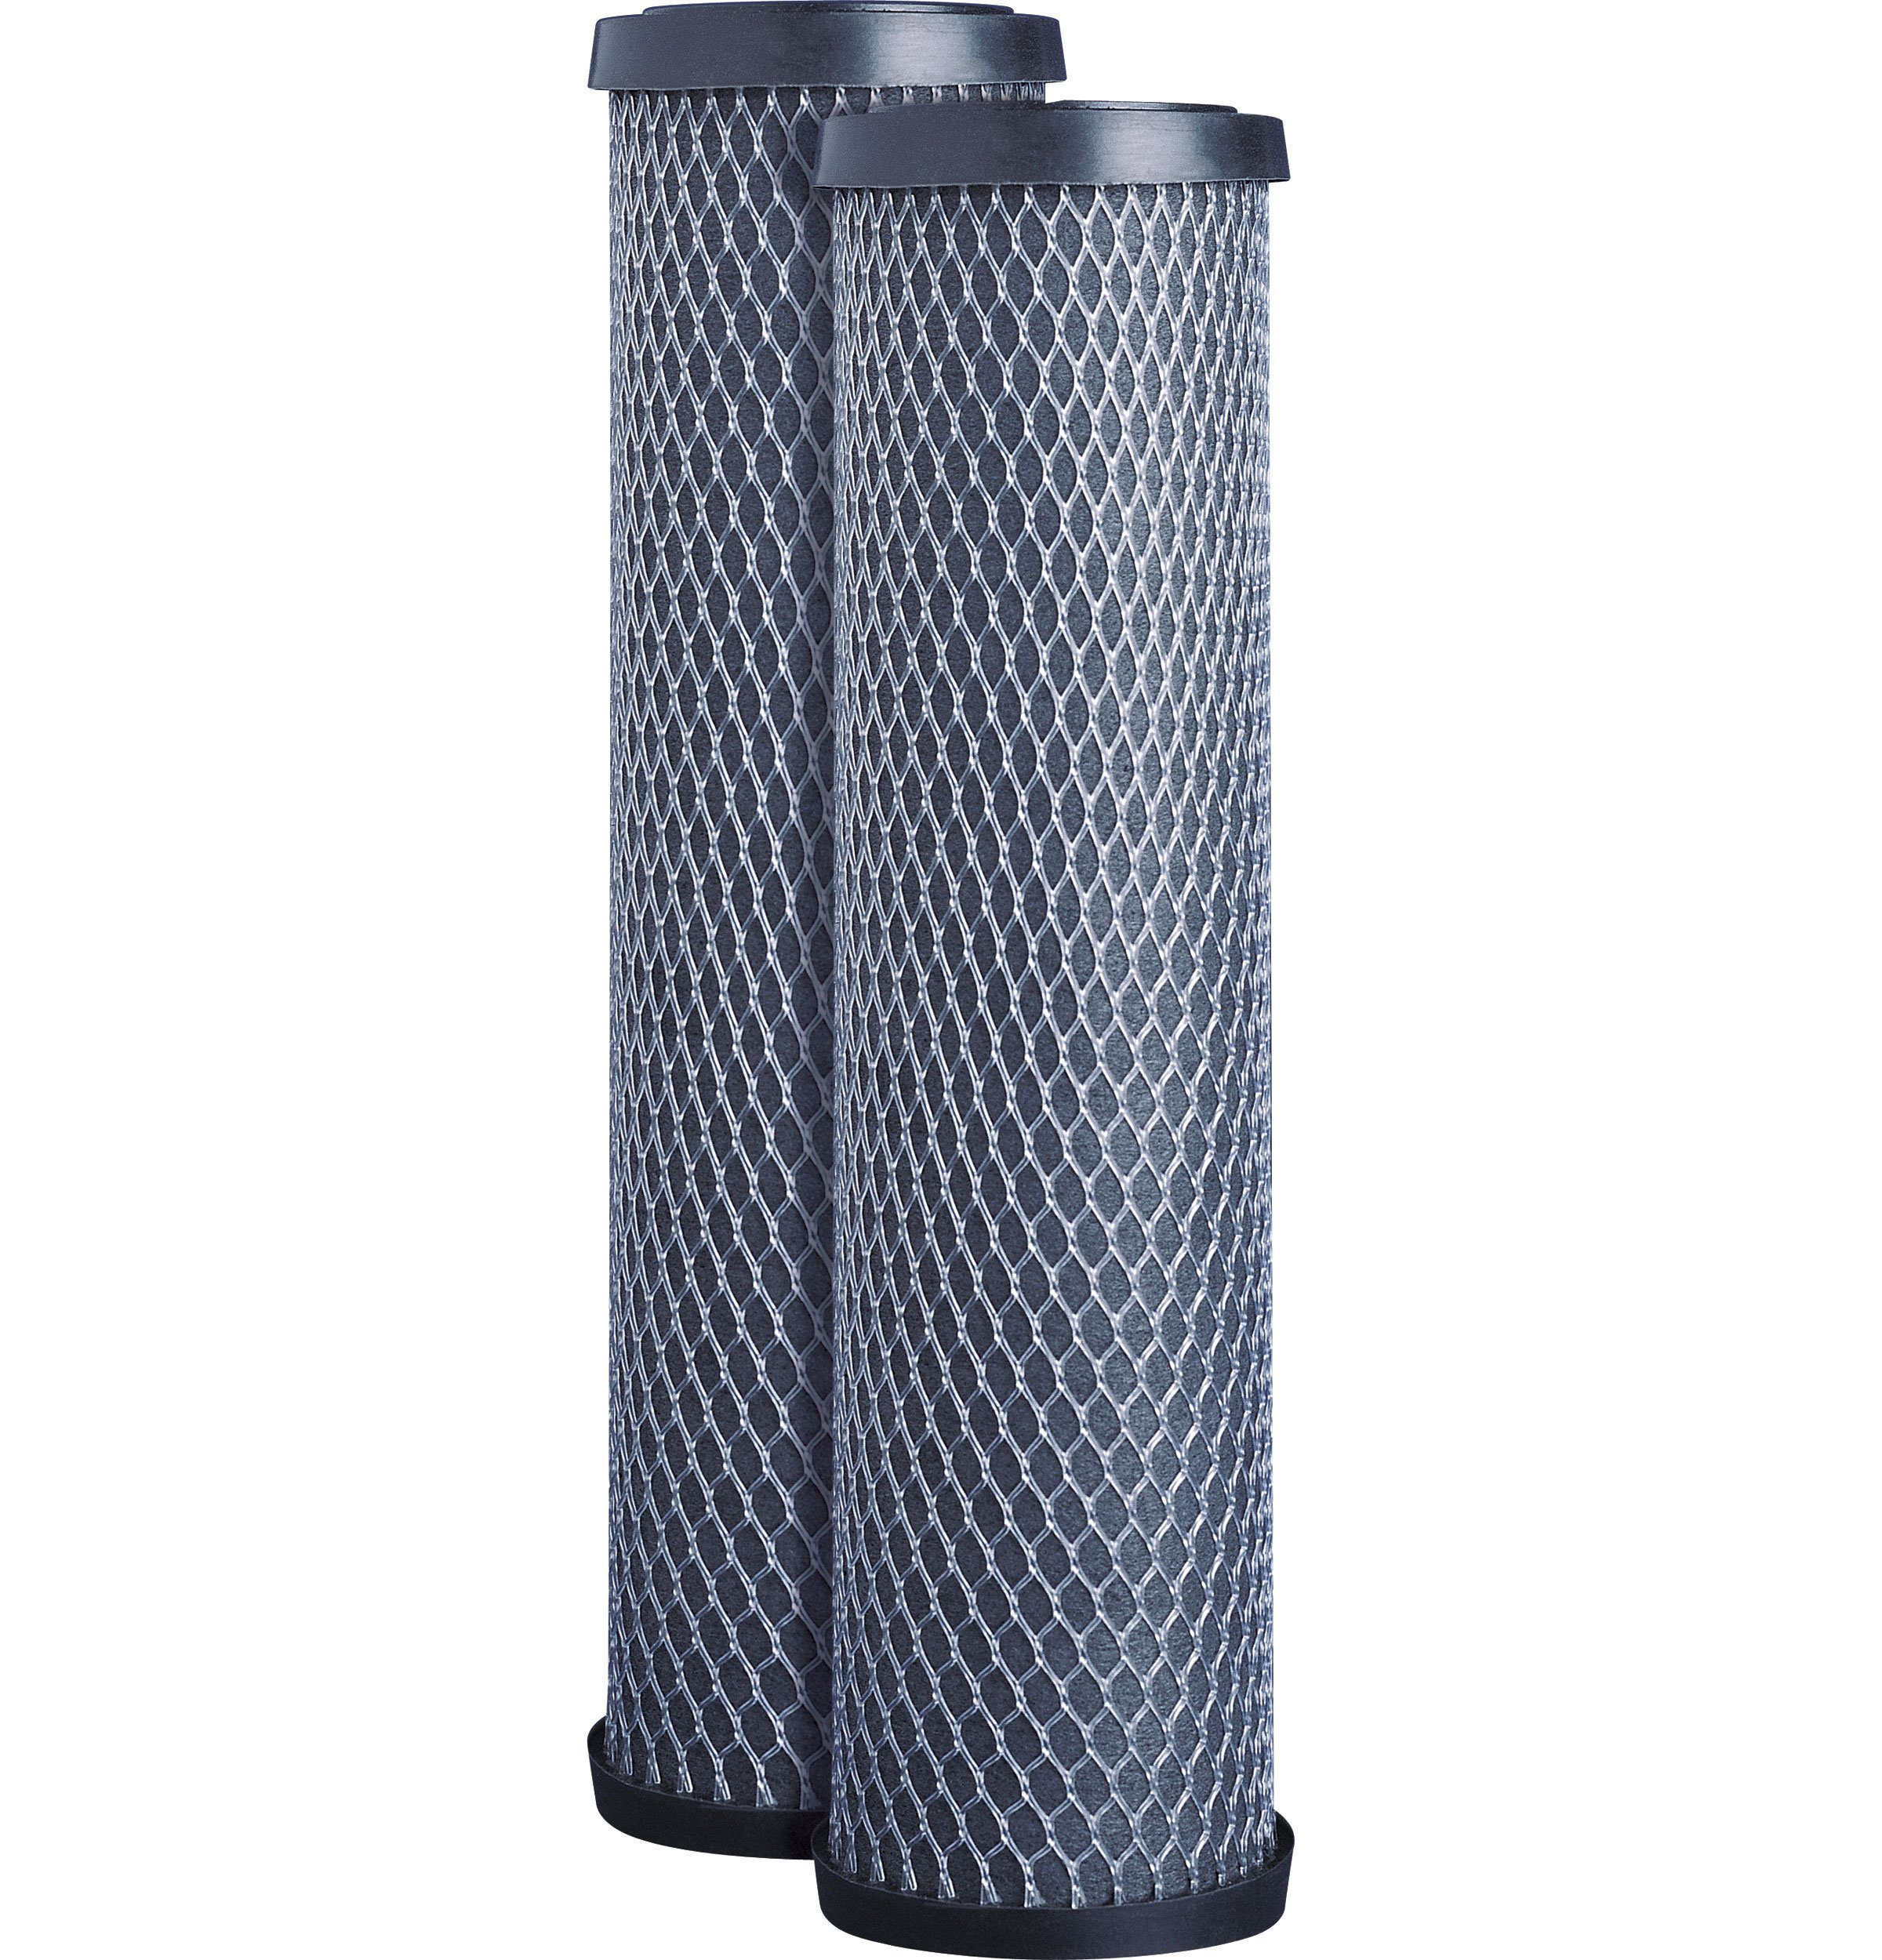 GE FXWTC Whole Home System Replacement Filter Set, Pack of 2 by GE